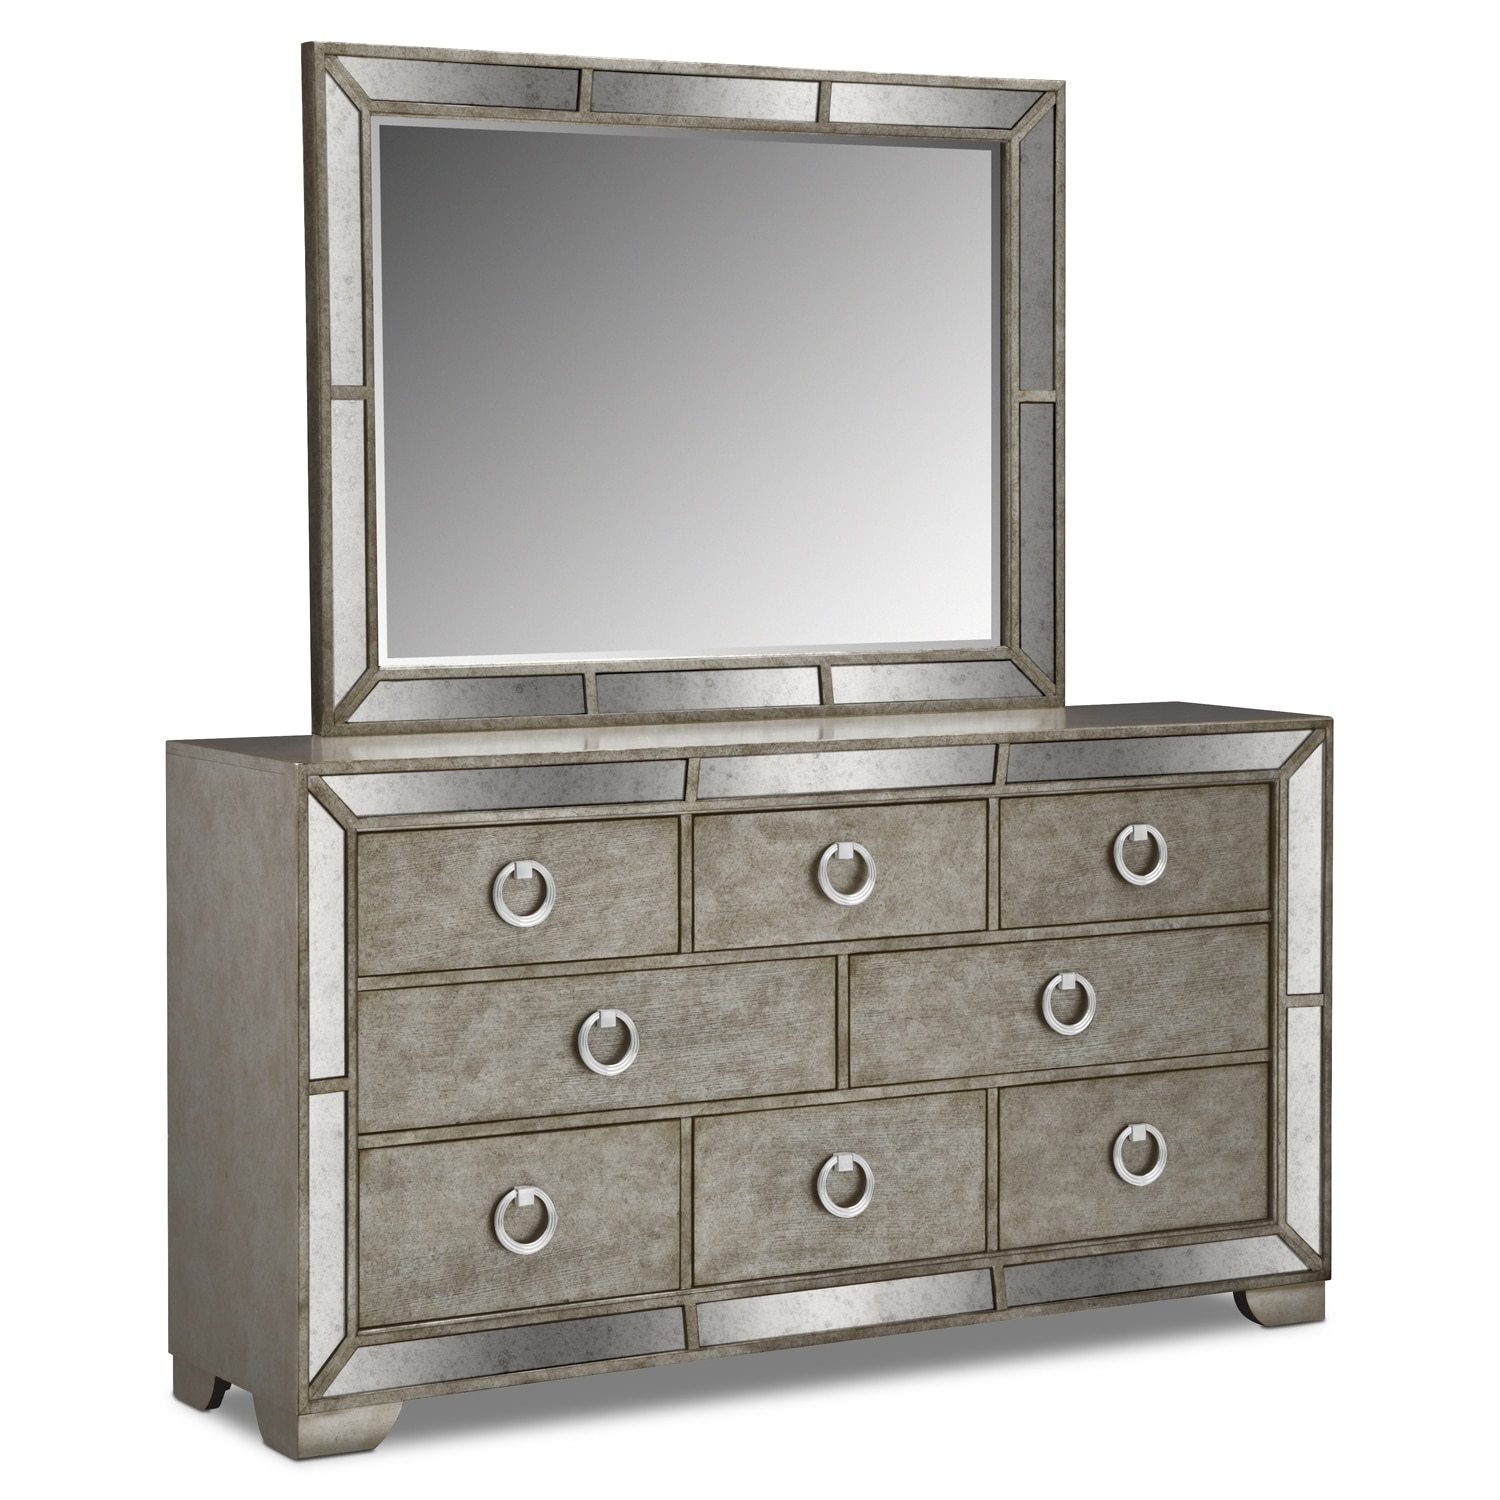 Angelina Dresser and Mirror - Metallic | Value City Furniture